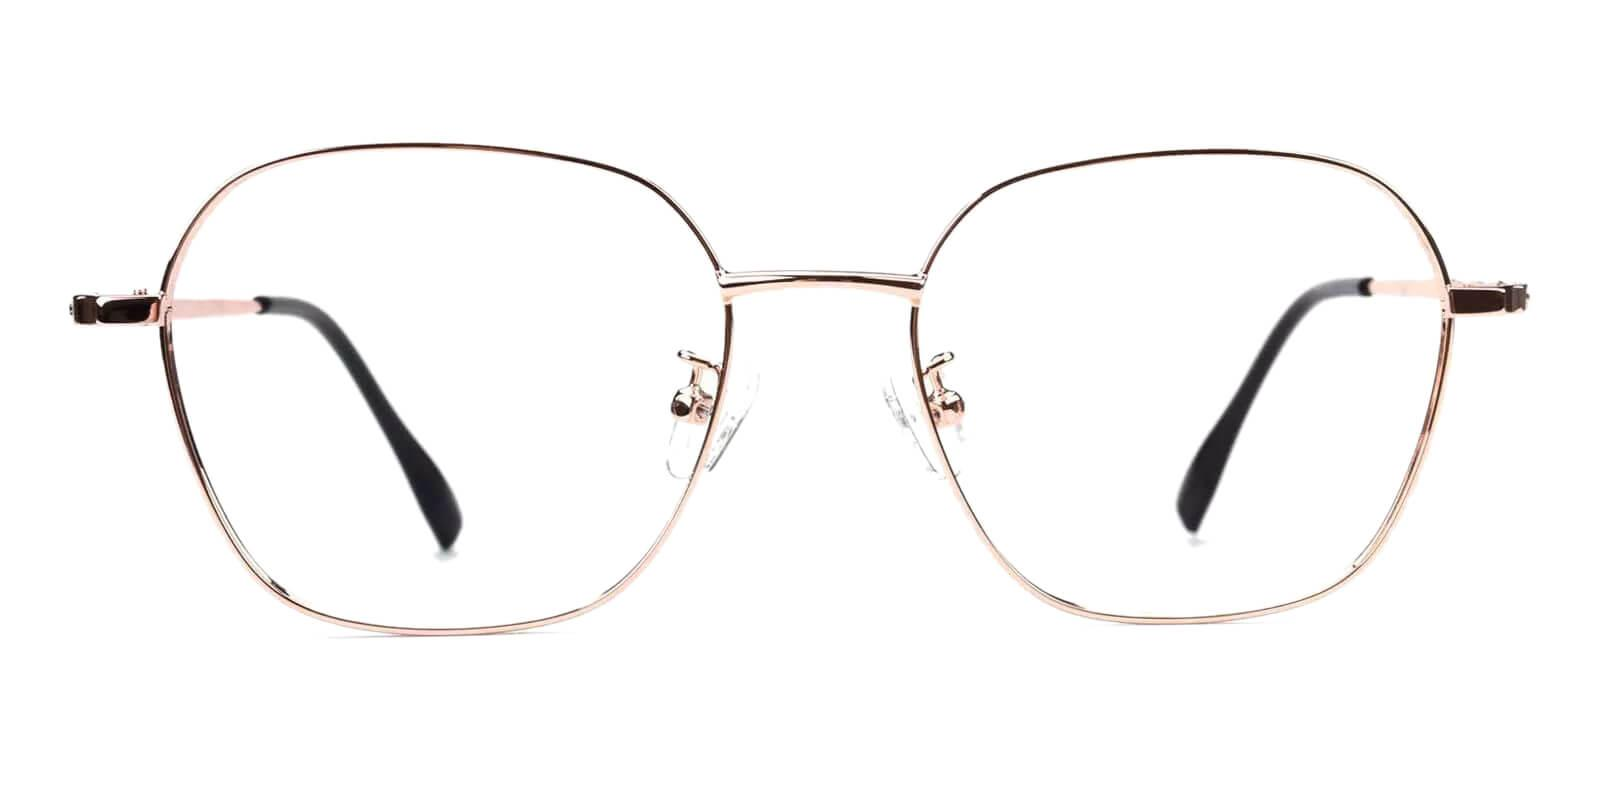 Ruff Gold Metal Eyeglasses , Fashion , NosePads Frames from ABBE Glasses